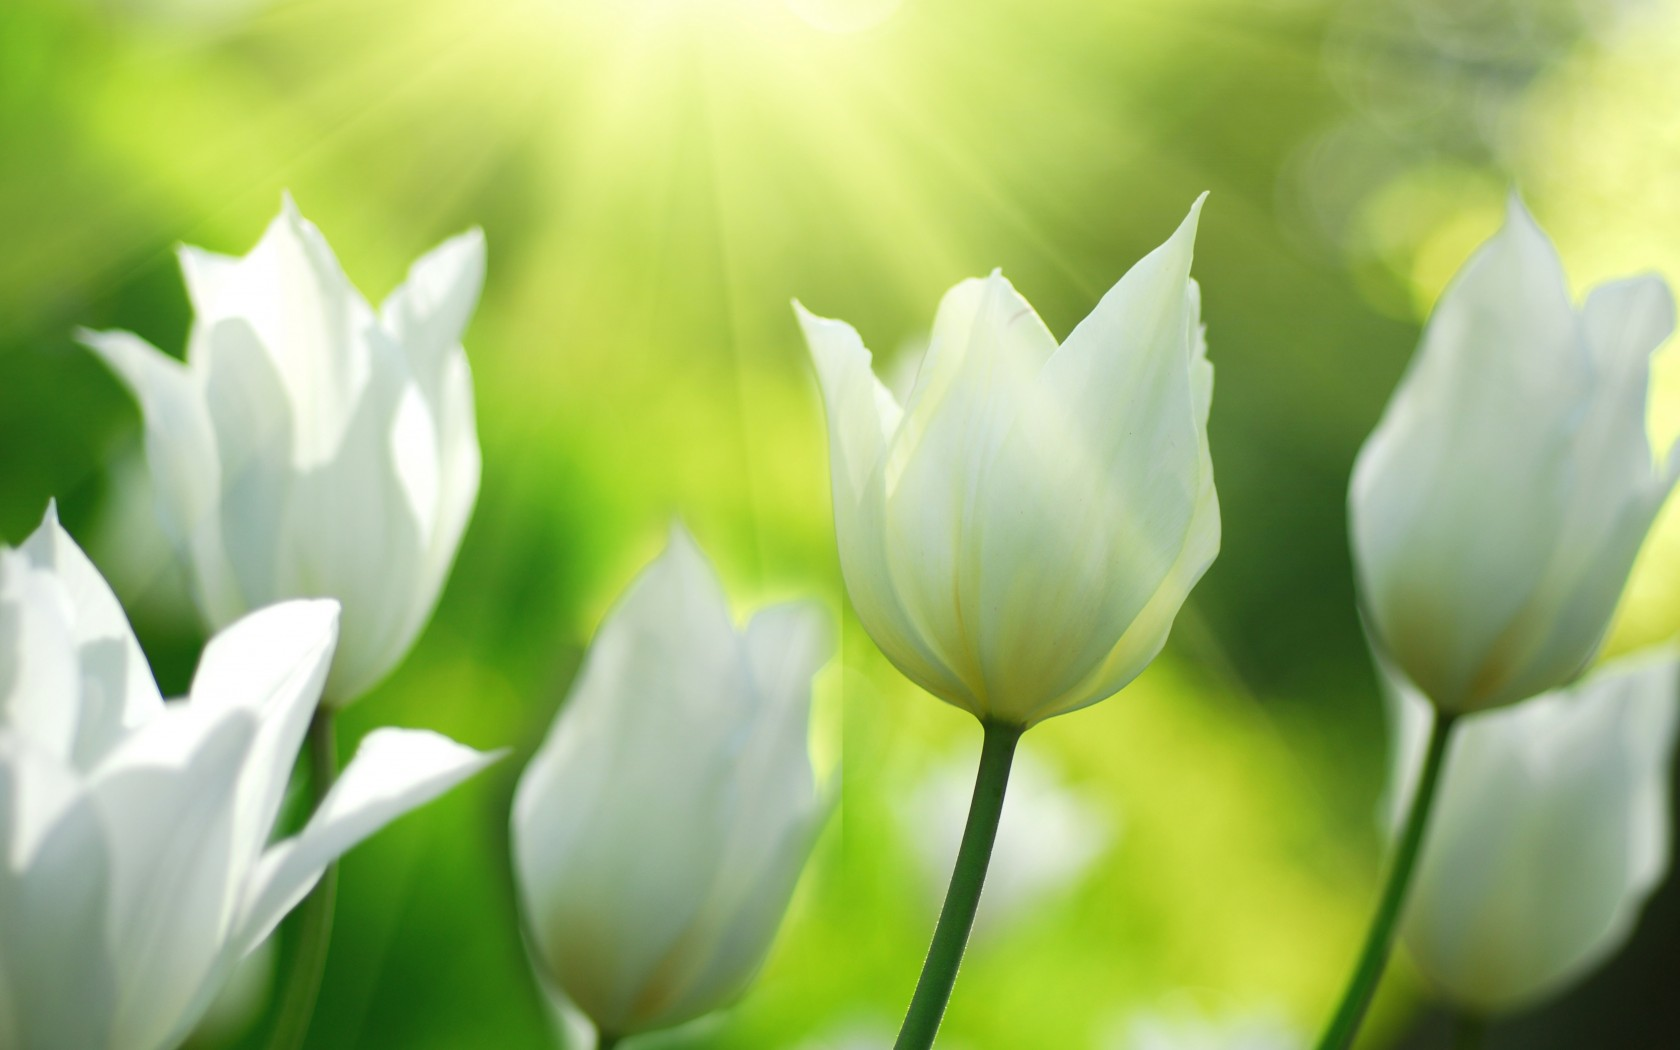 Spring White Tulips Flowers Wallpapers 1680x1050 152780